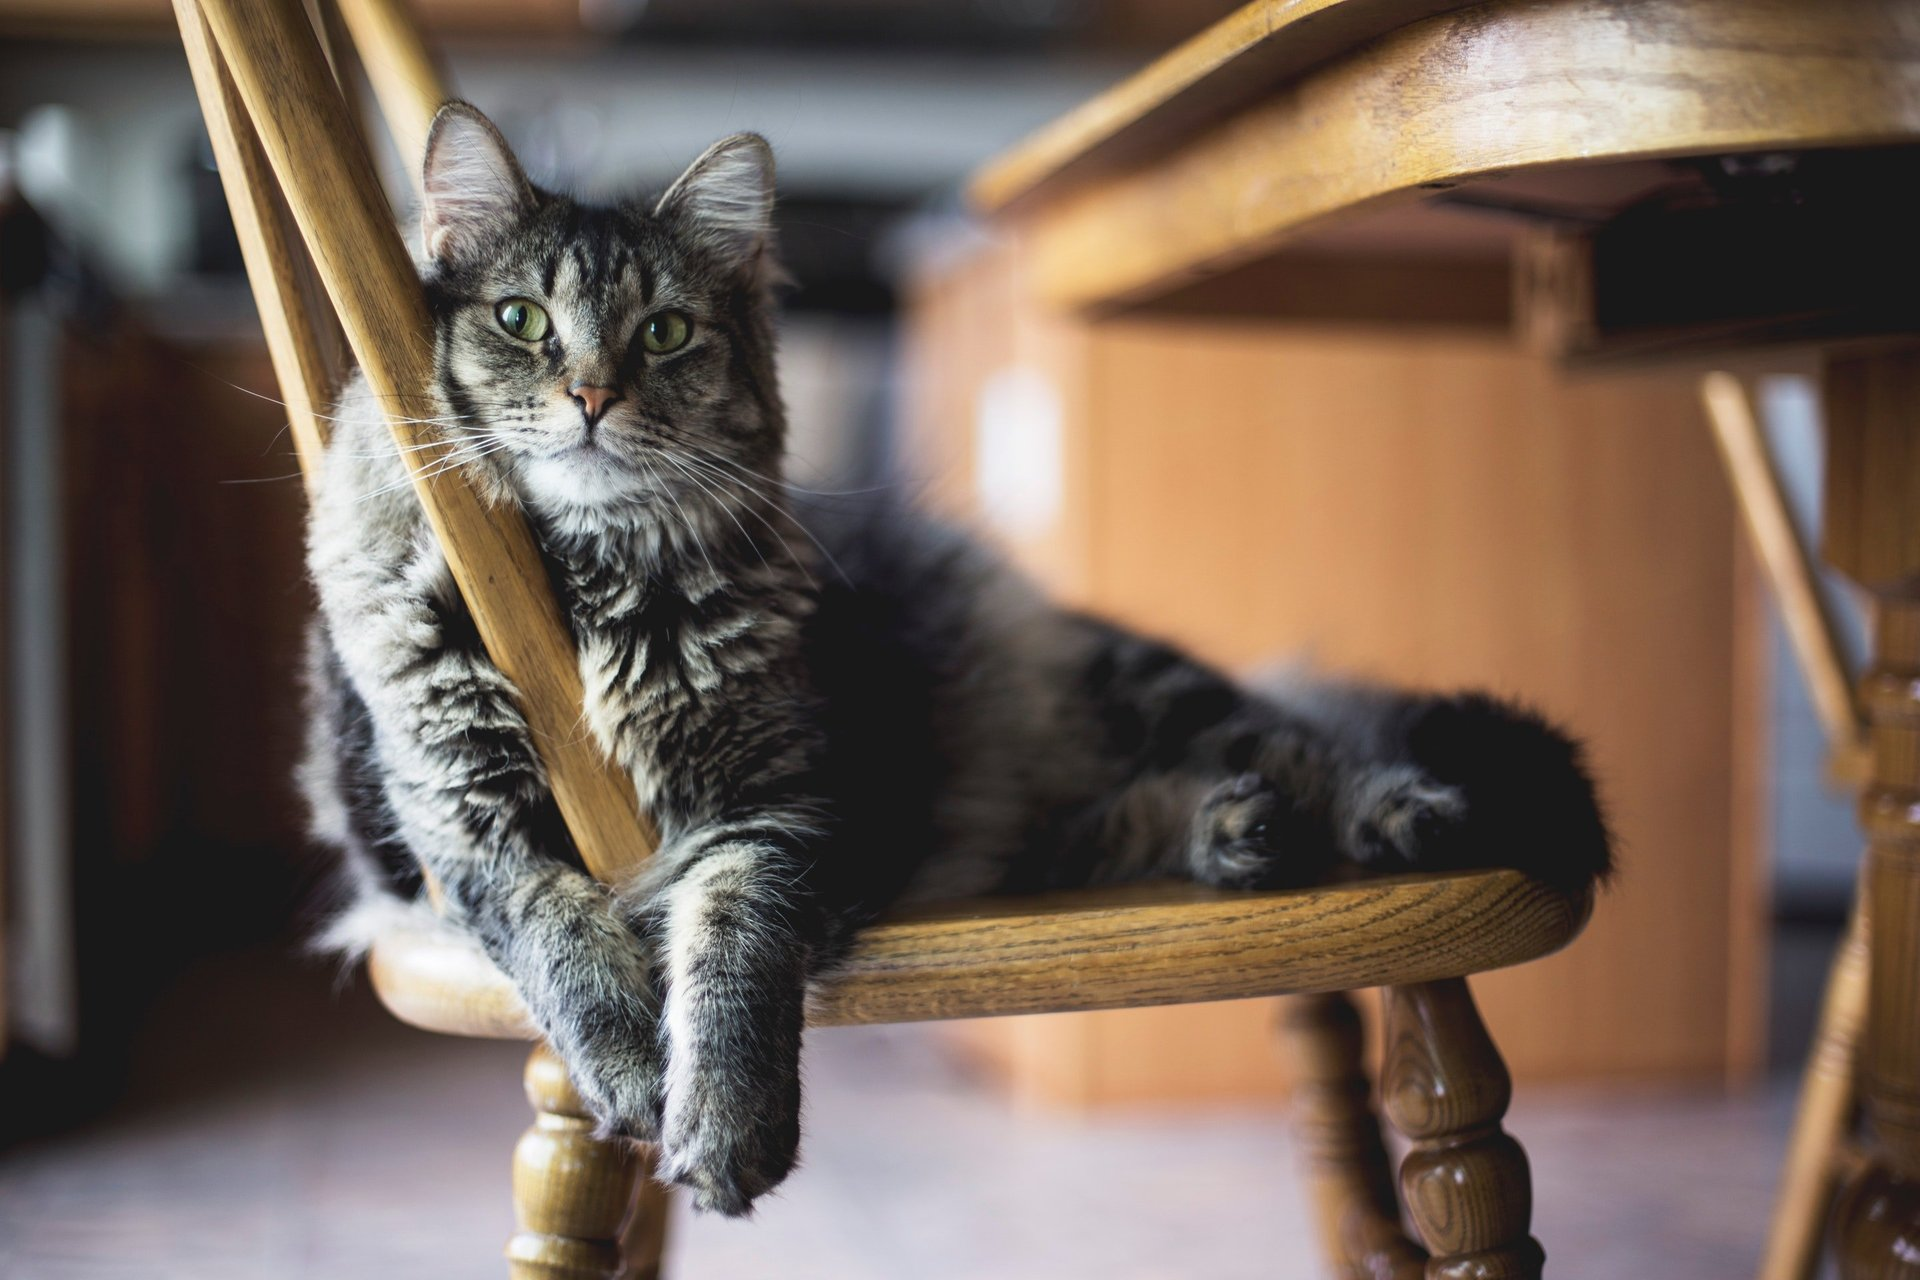 A Cat Lounging on a Chair